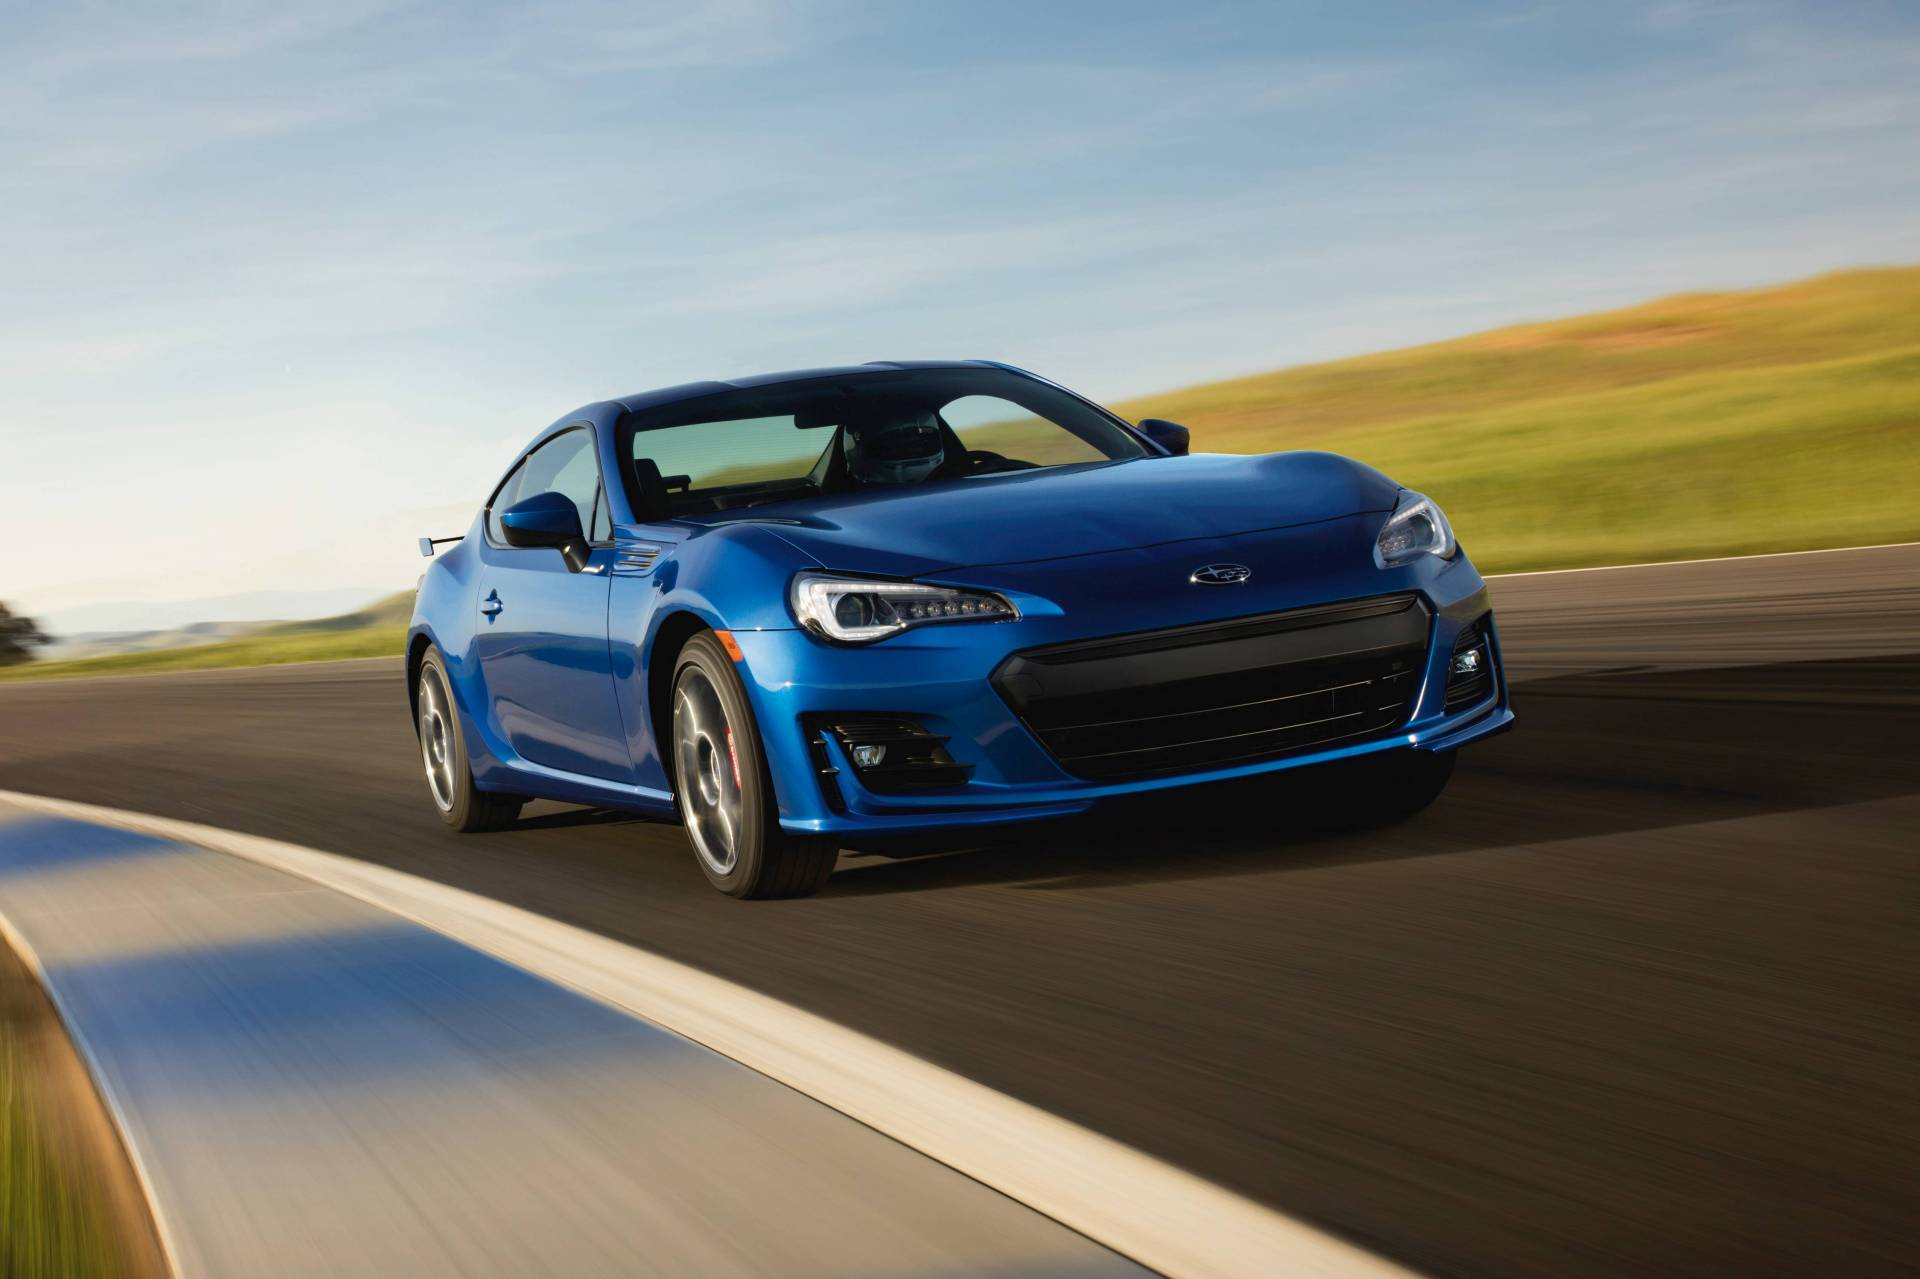 2021 Subaru BRZ To Feature FB24 N/A Boxer Engine ...